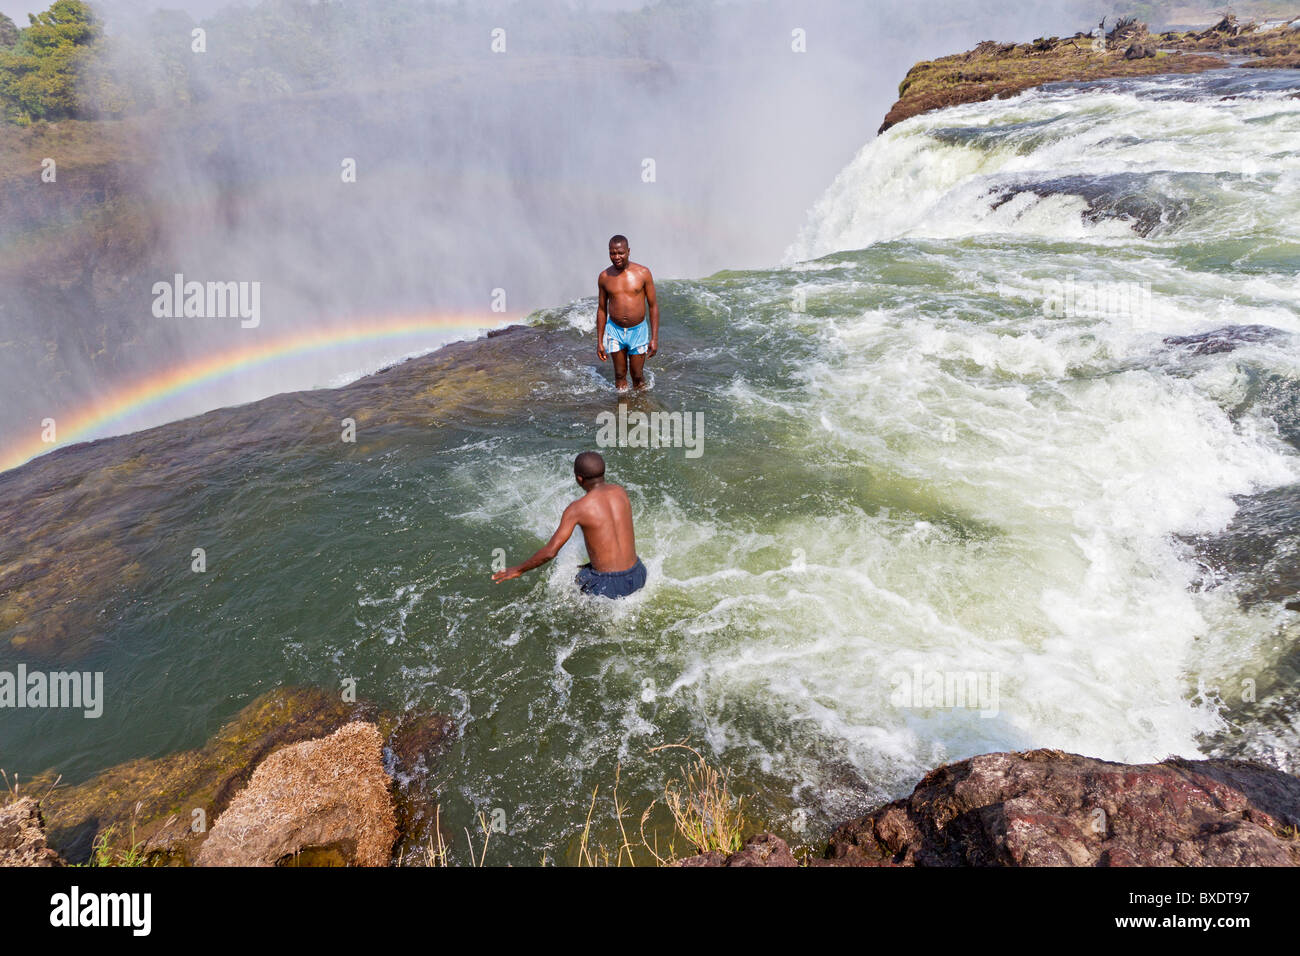 Man jumps into Devil's Pool at Victoria Falls. - Stock Image